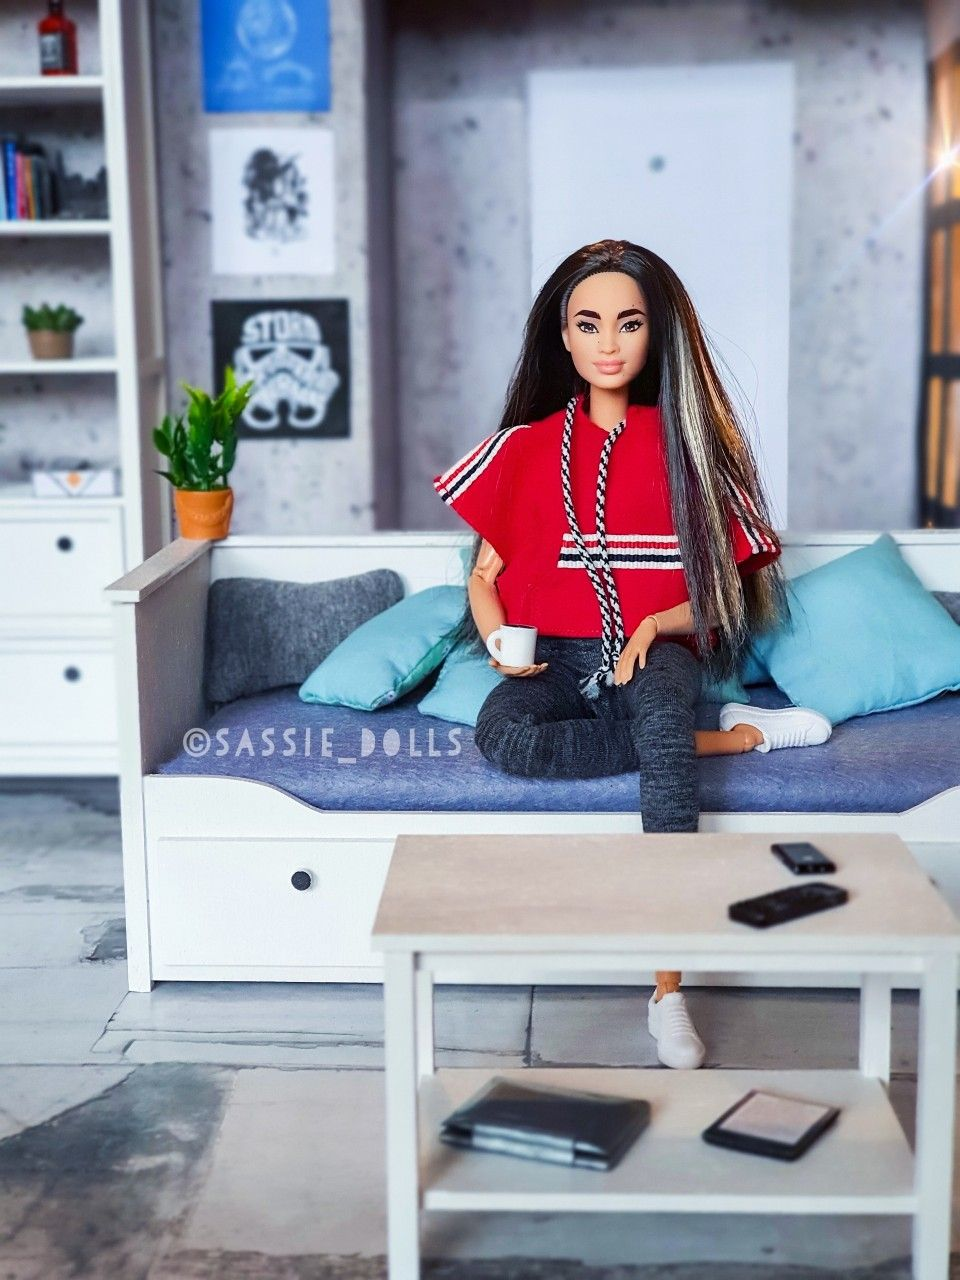 New Clothes In 2020 Barbie Fashionista Dolls Barbie Diorama Barbie Fashionista